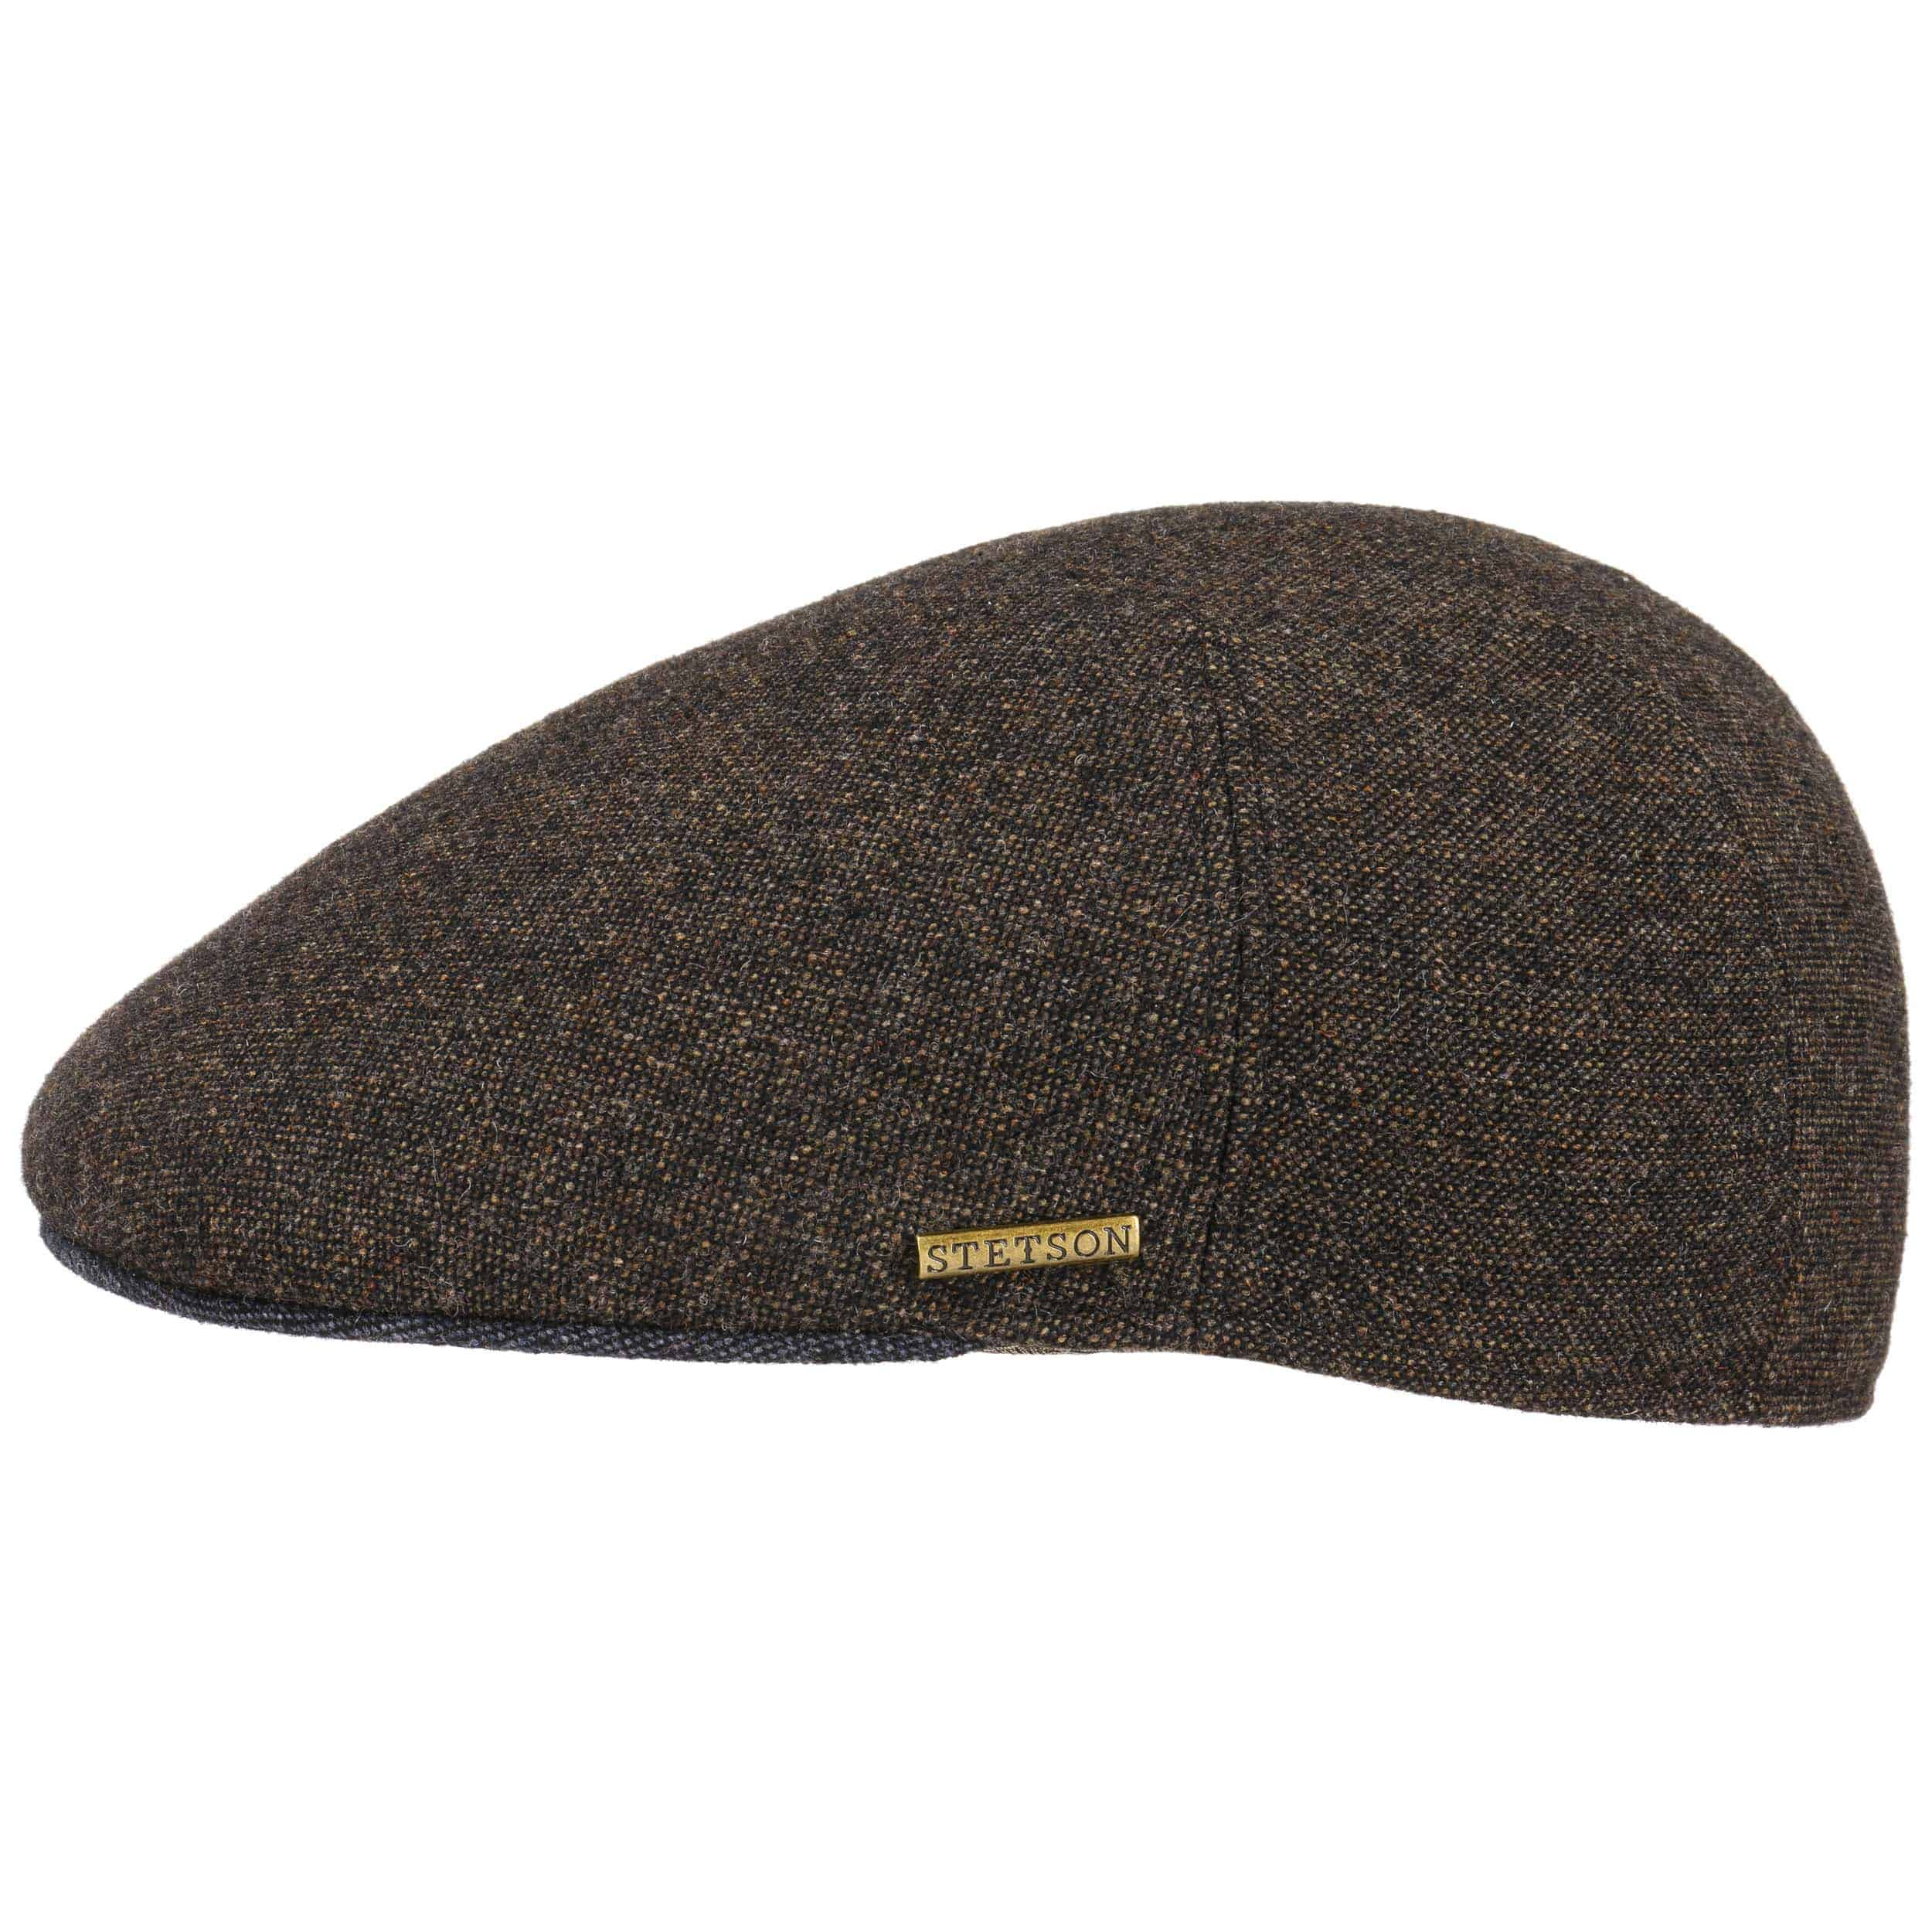 0e02fe6a352 ... Ivy Wool Flat Cap With Cashmere by Stetson - brown-mottled 5 ...